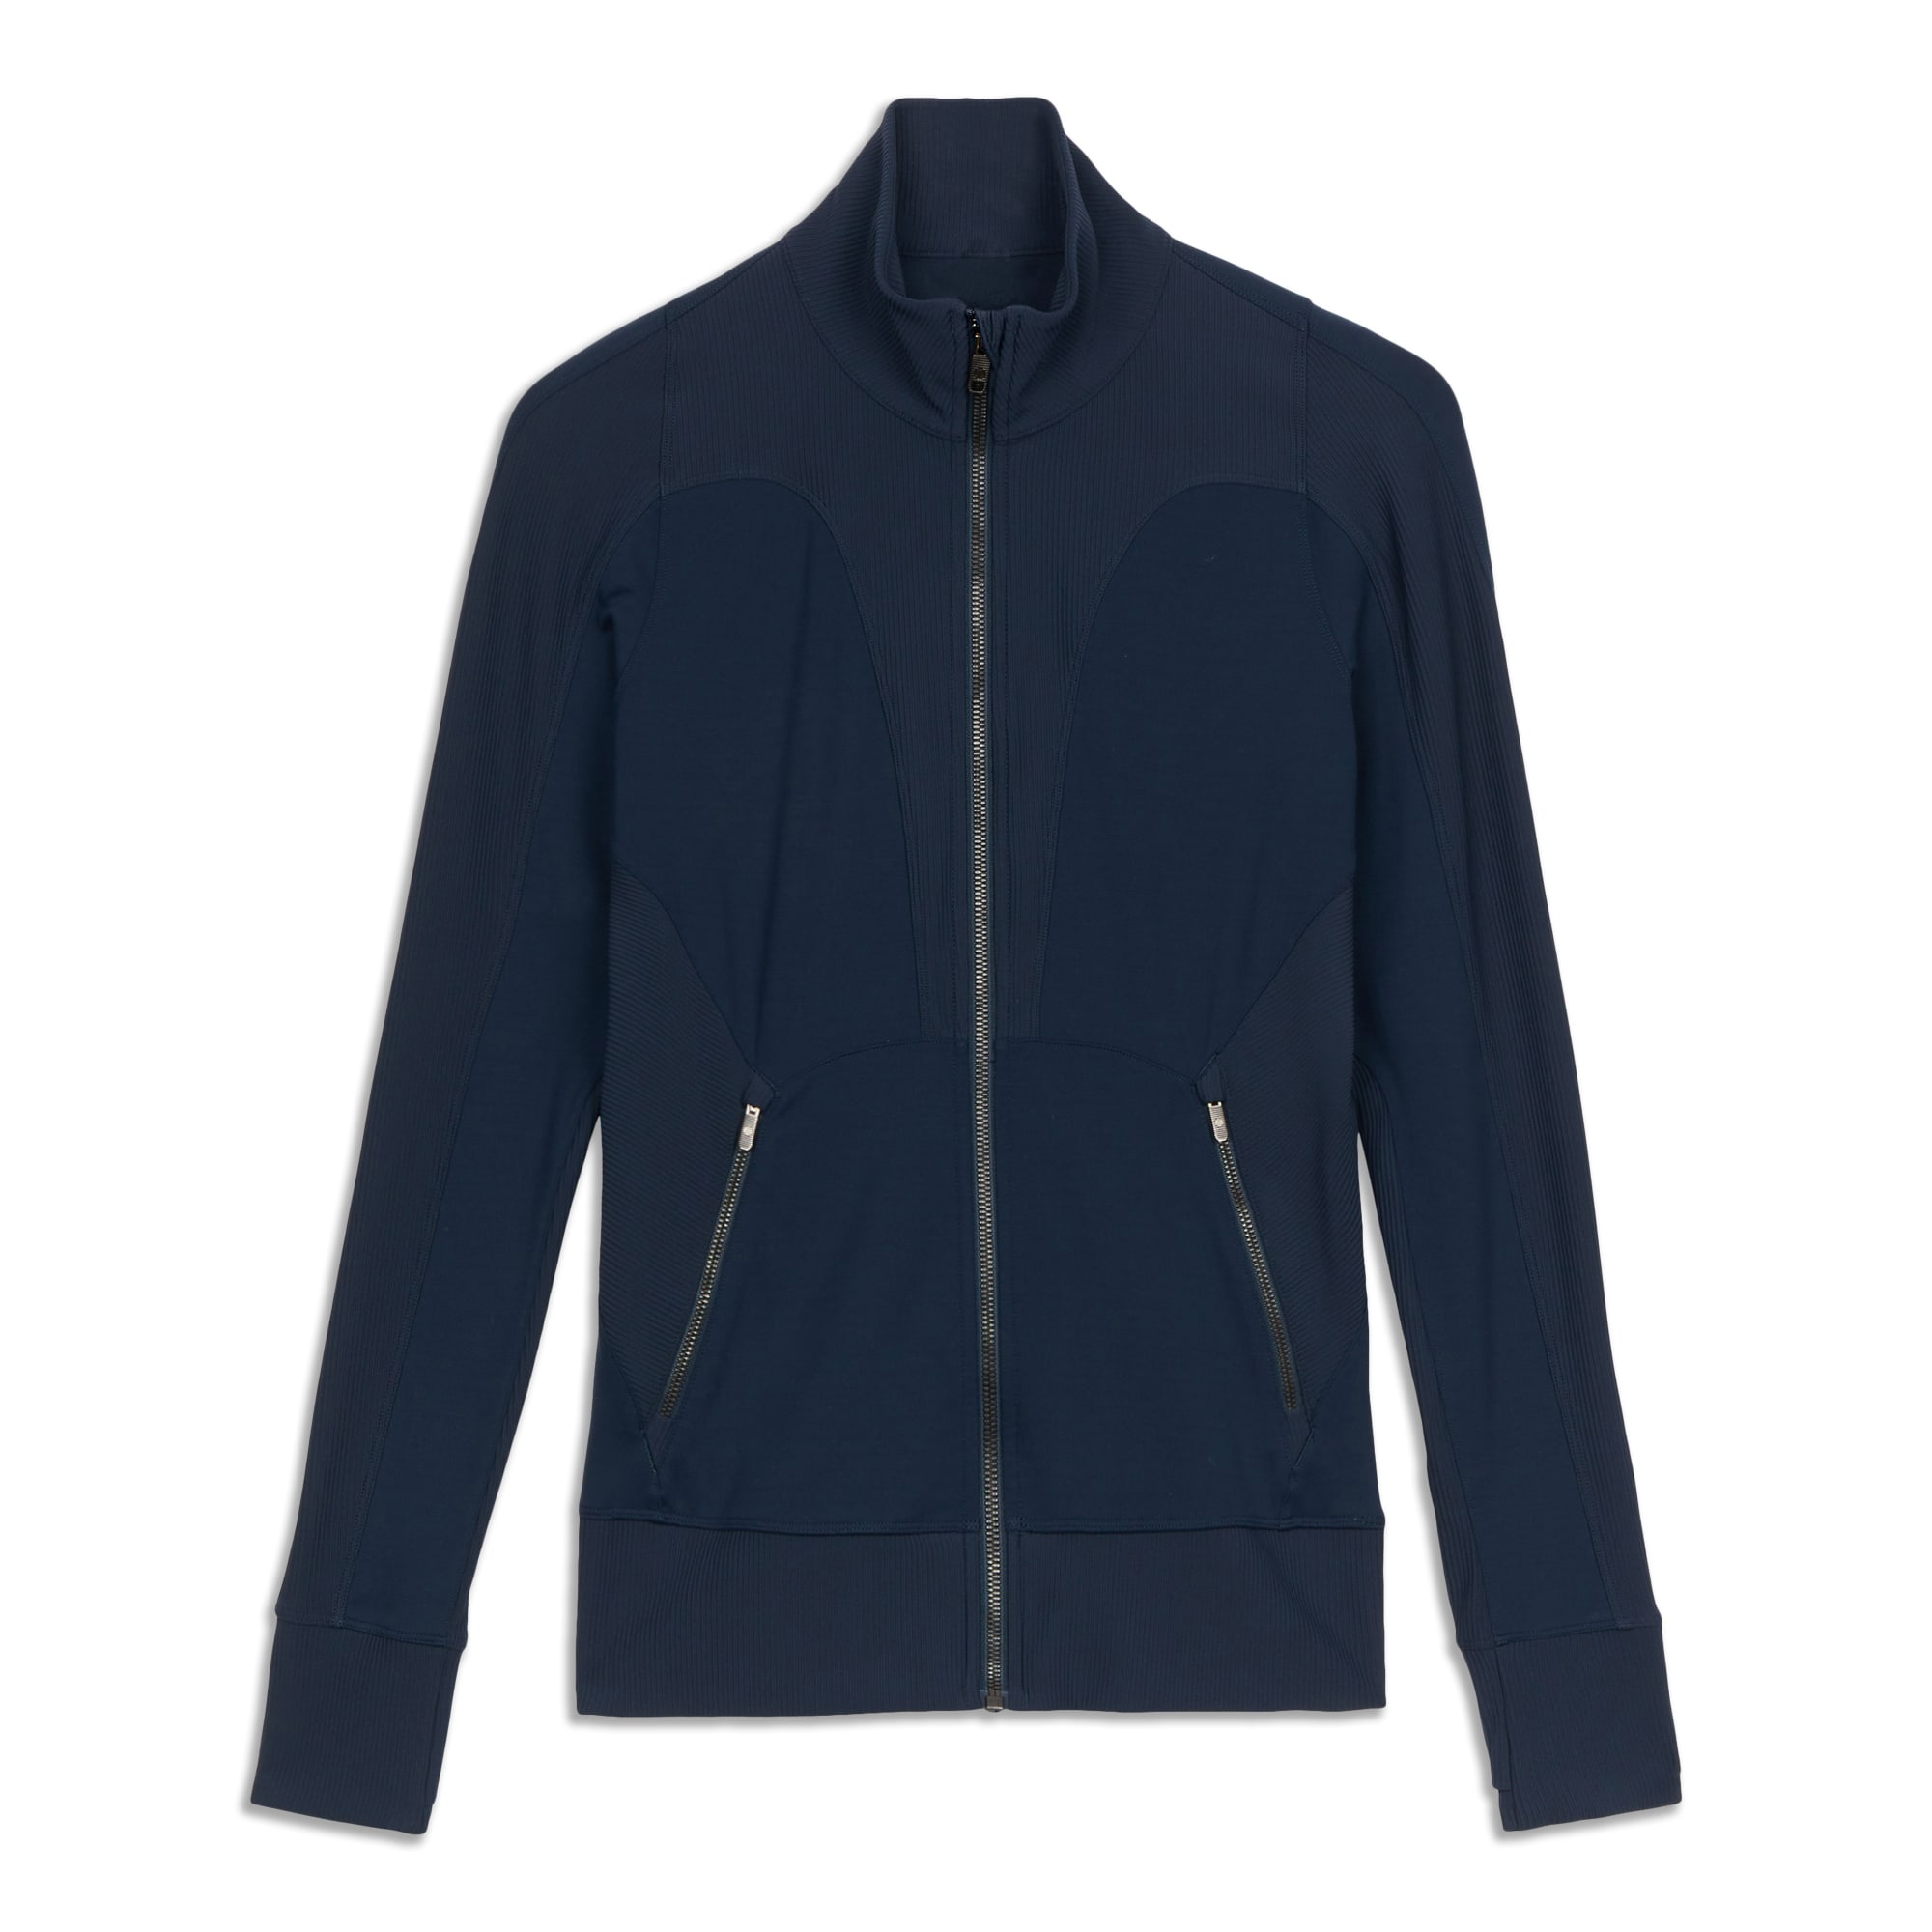 Main product image: Movement To Movement Jacket - Resale